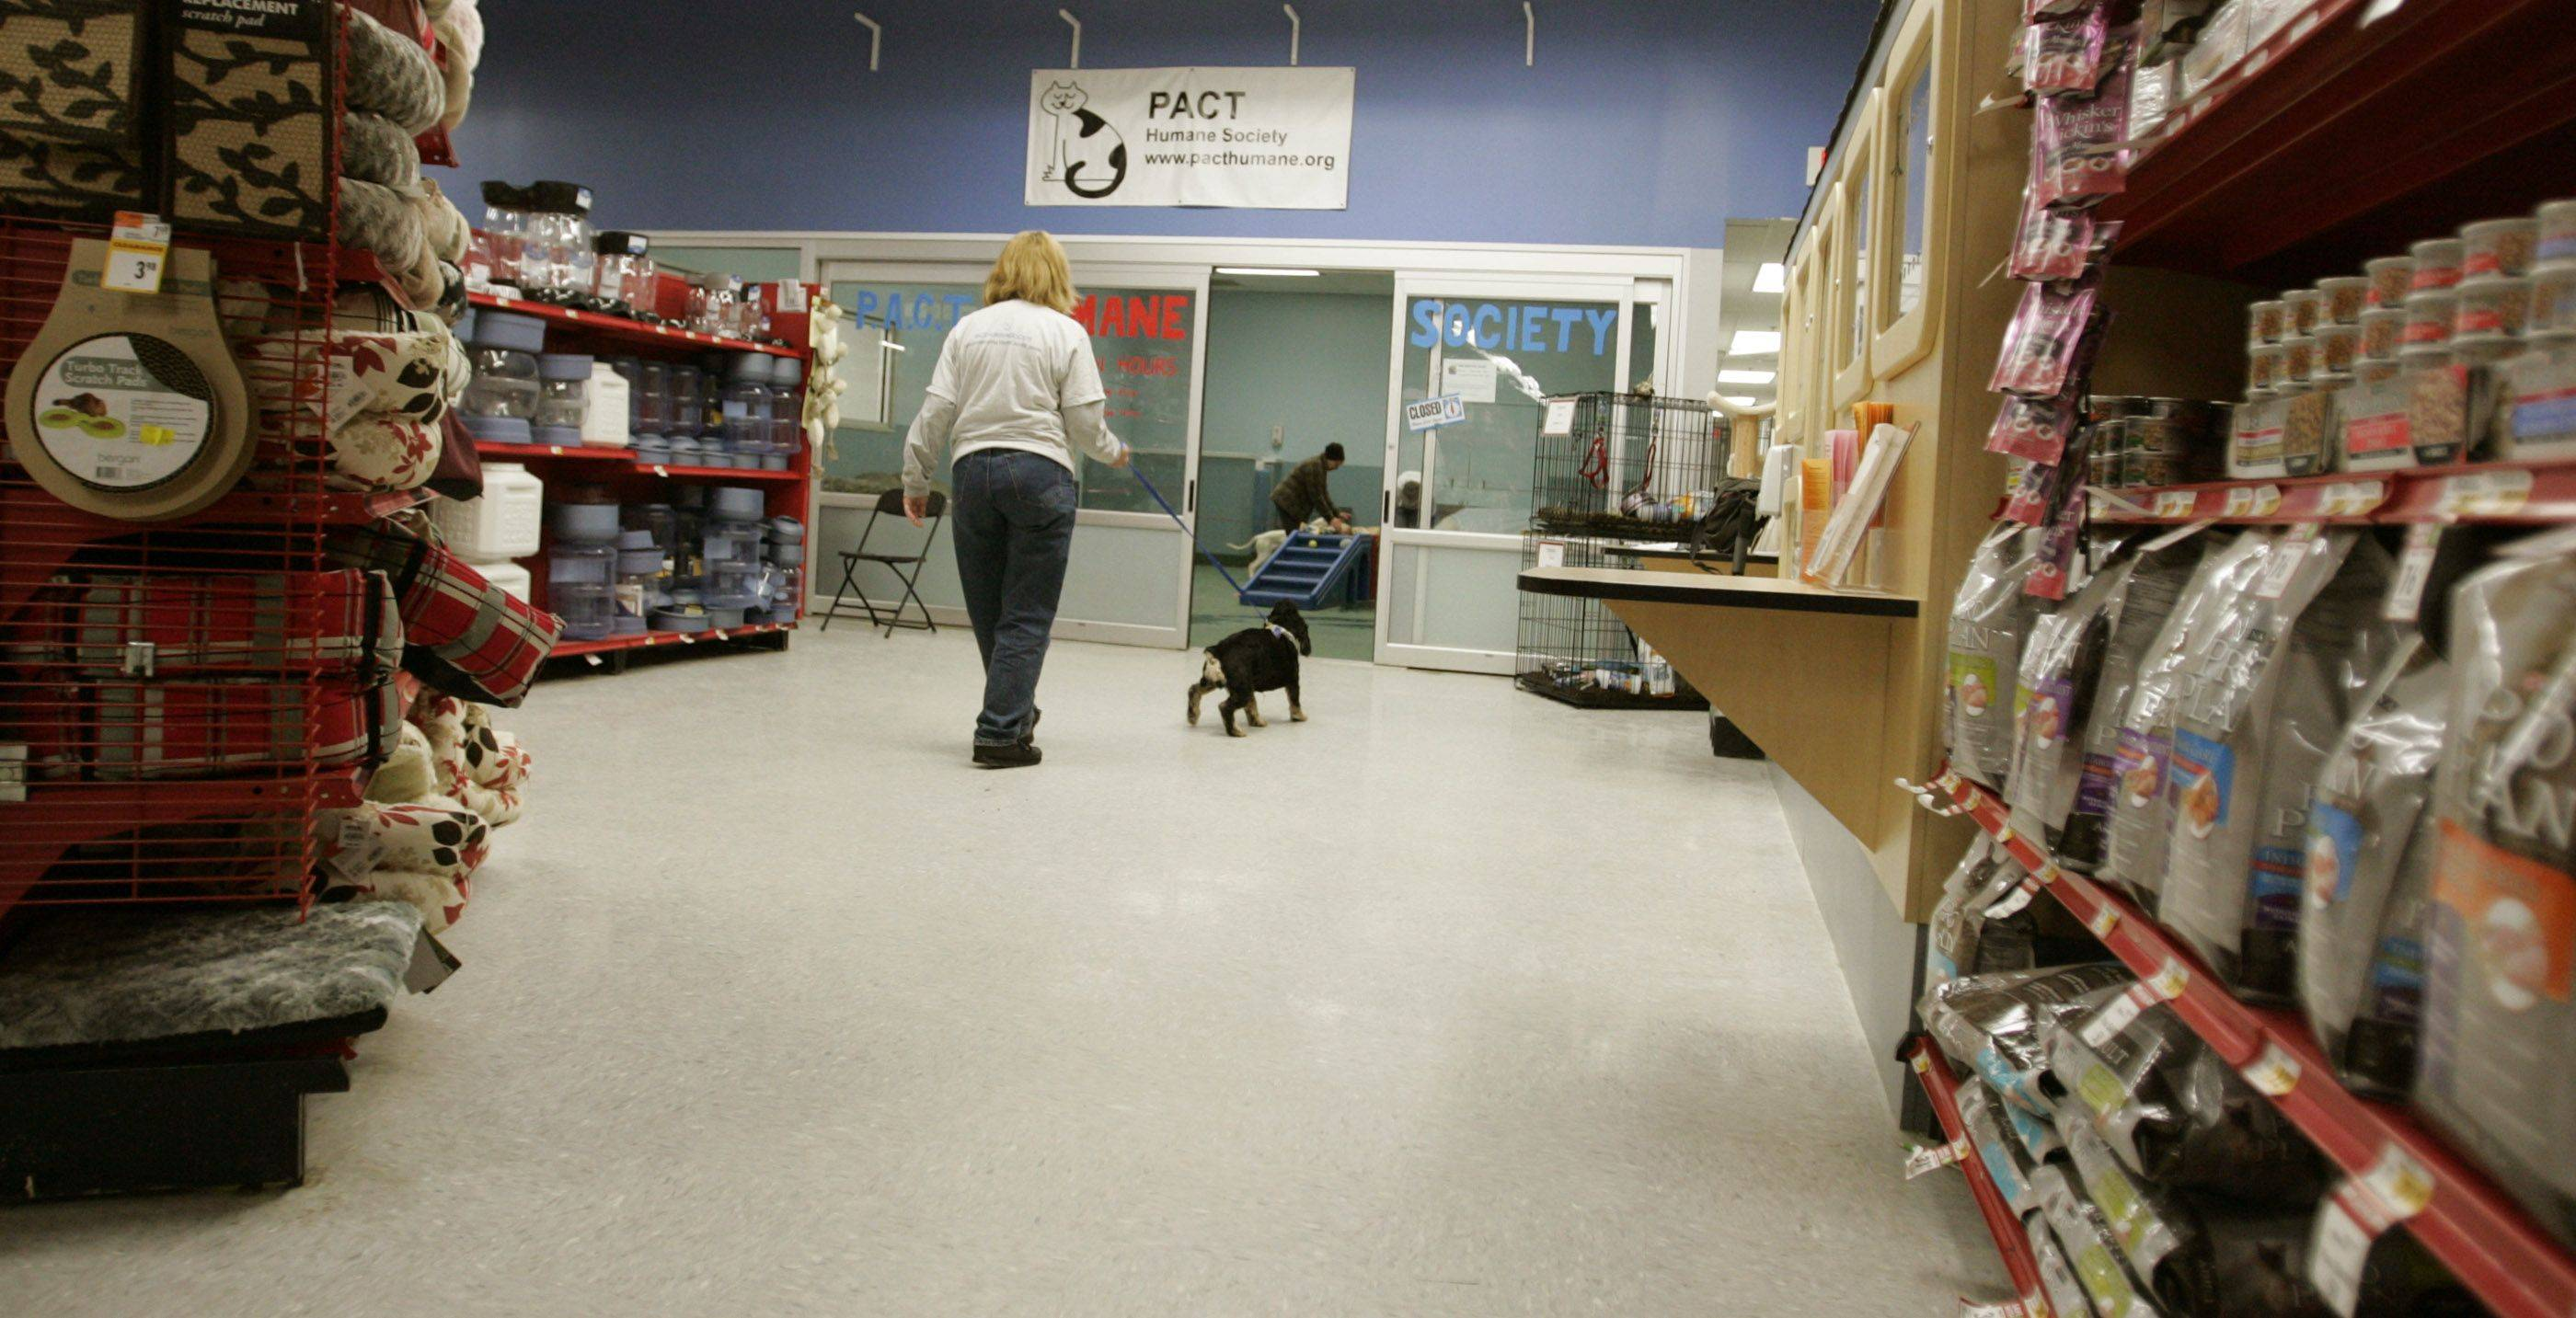 PACT Humane Society must vacate its Bloomingdale Petco location by March 23 because the animal shelter does not have the required special use permit.